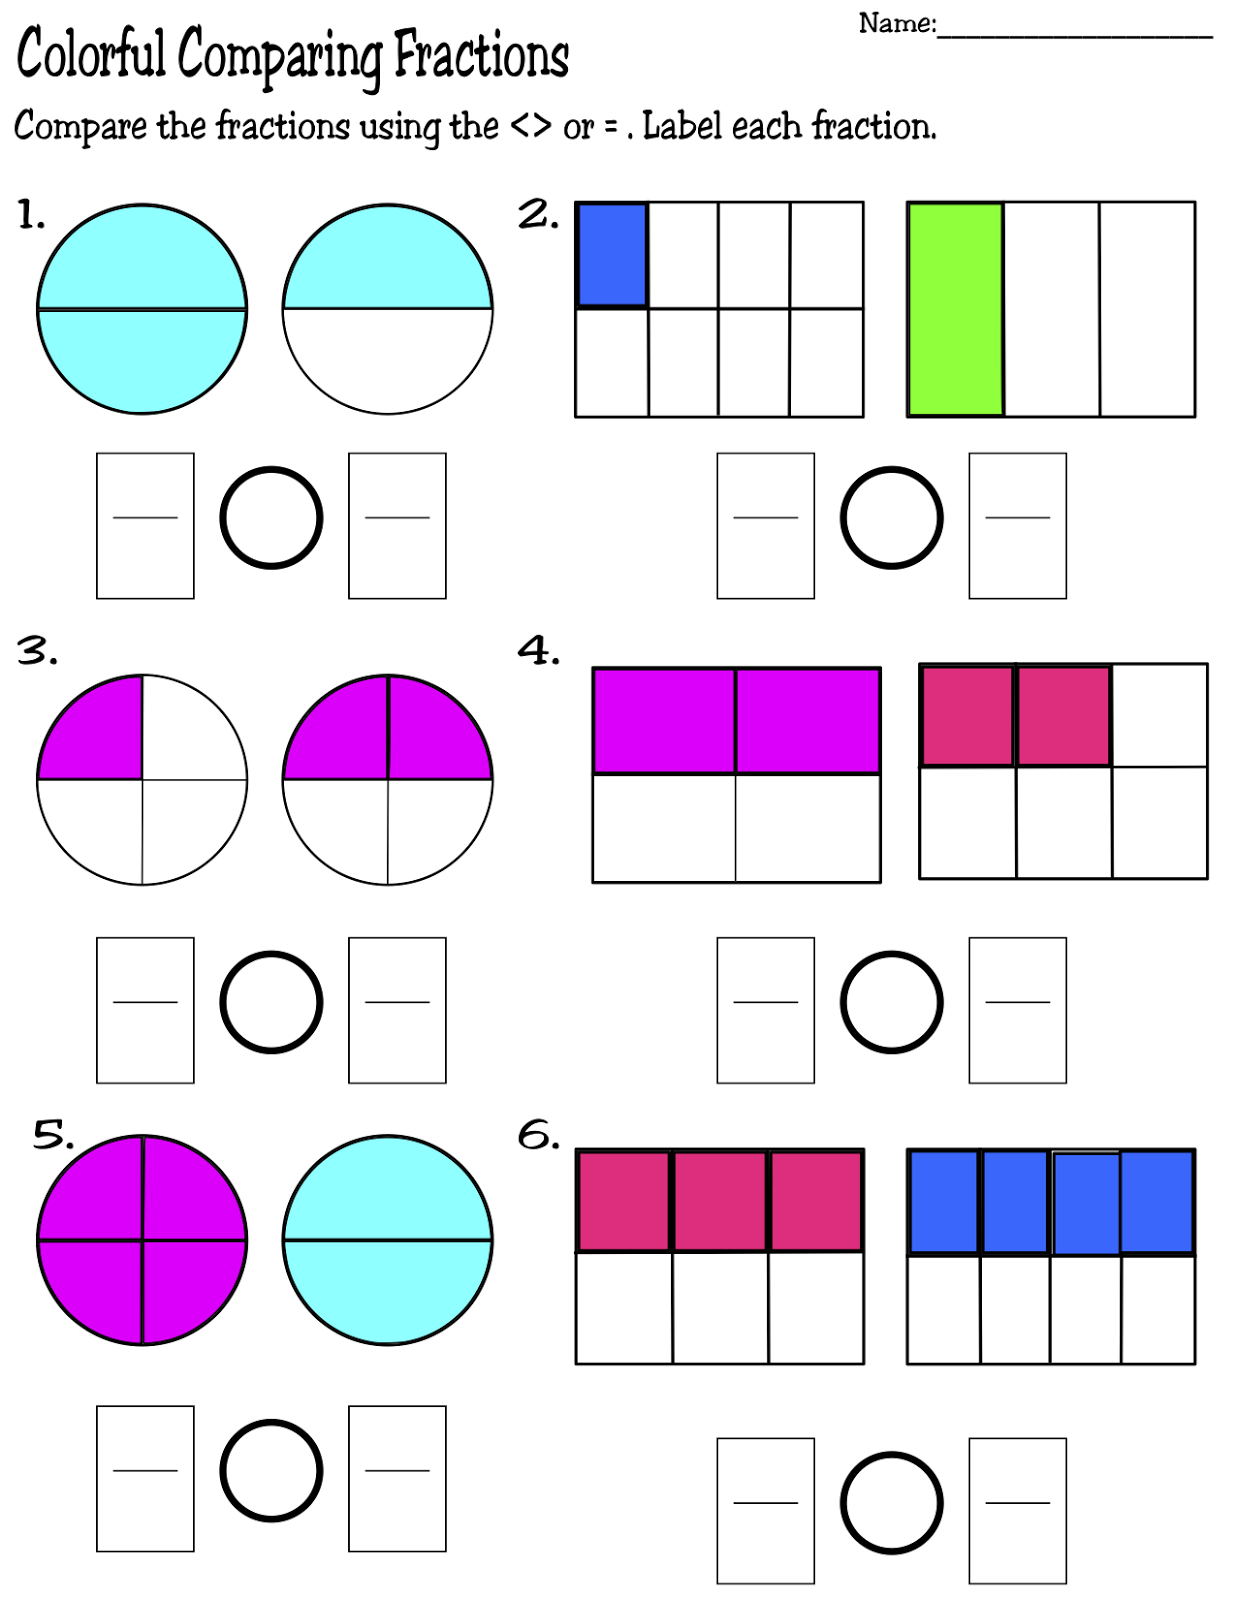 Worksheet Fraction For 3rd Grade fraction worksheets for third grade printable comparing fractions led to equivalent with these lessons